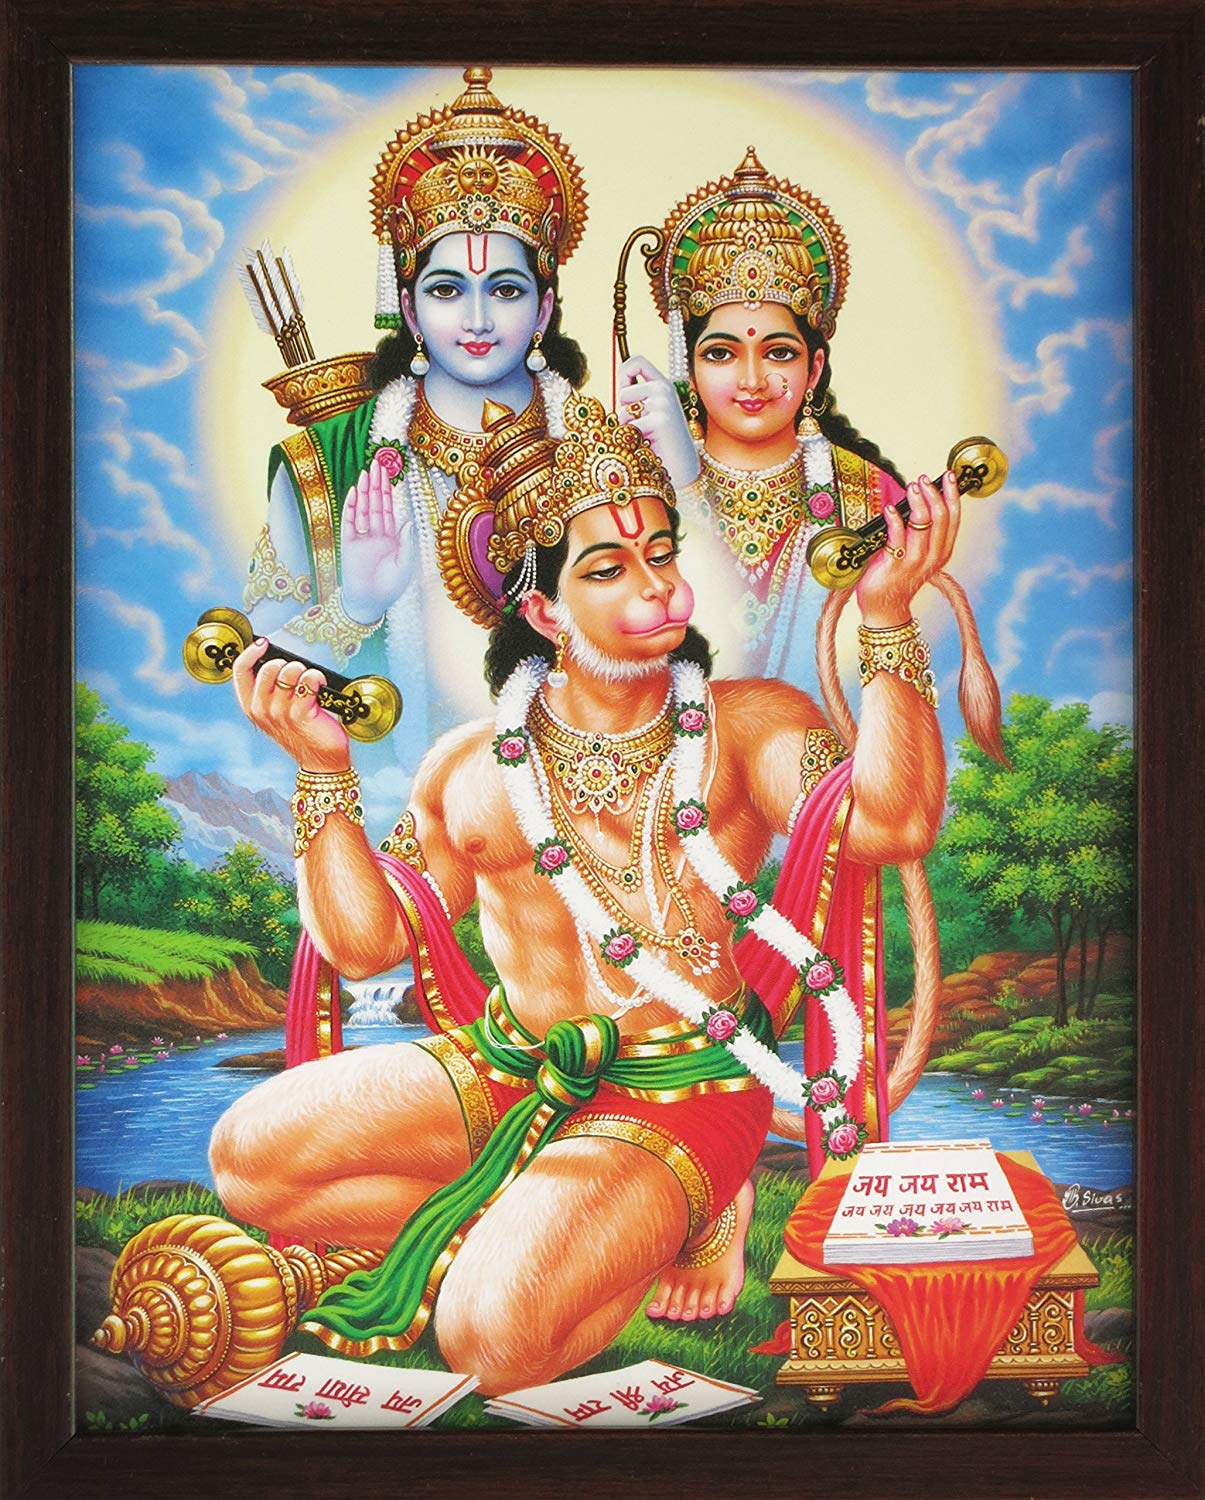 Lord Hanuman Reciting Sita Ram Sita Ram and Lord Ram Giving Blessings, a Holy Hindu Religious Poster Painting with Frame for Worship Purpose